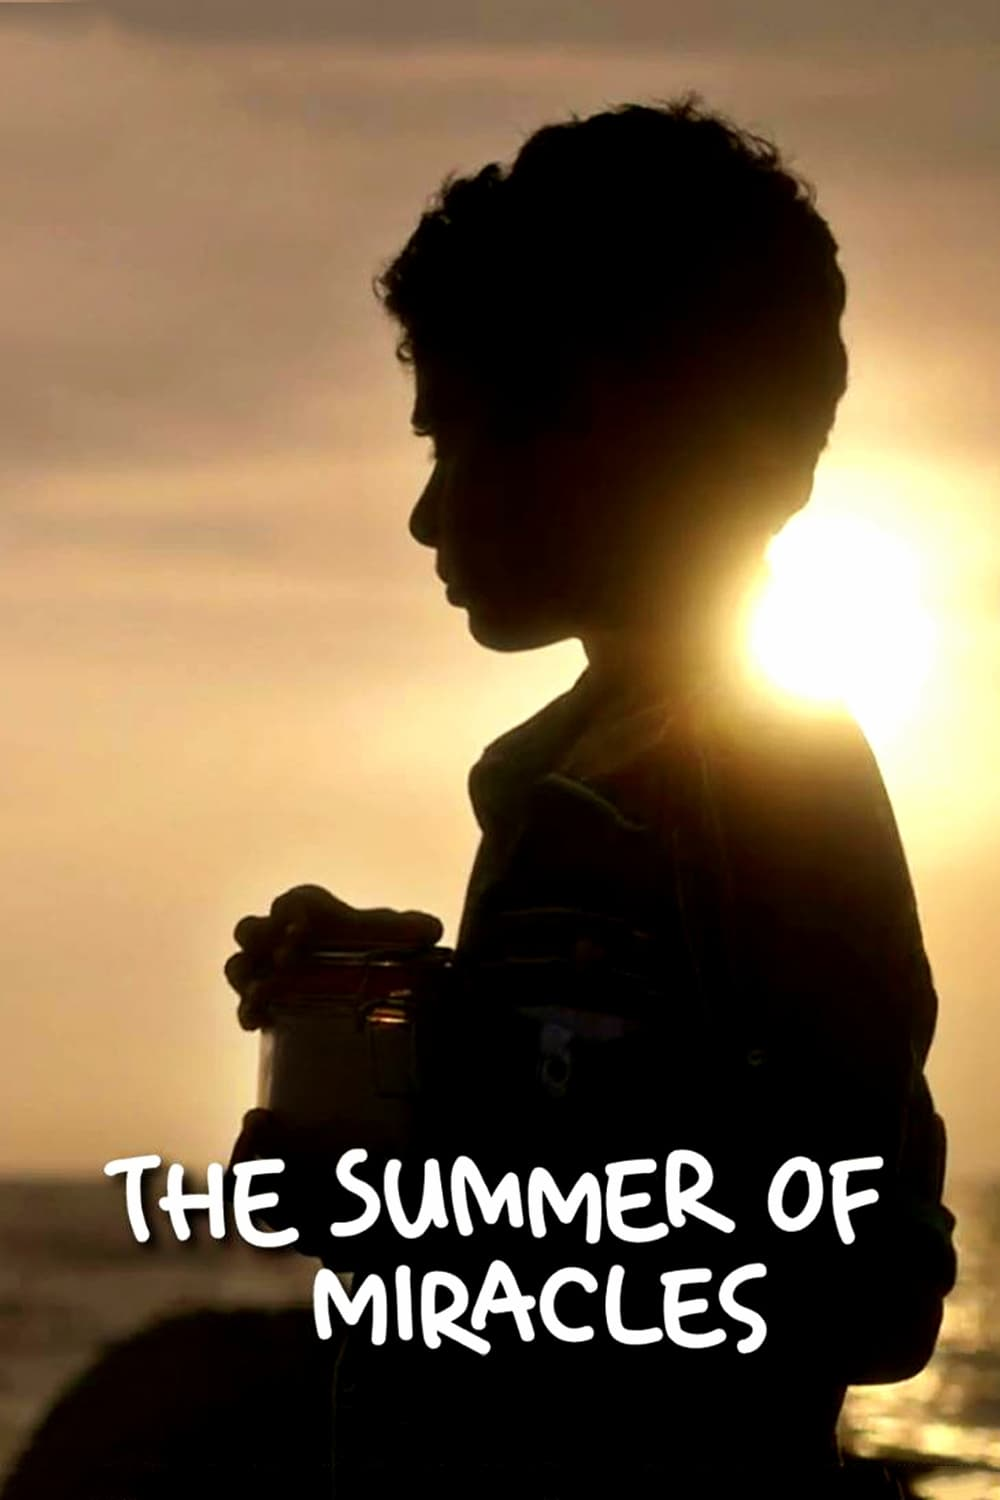 The Summer of Miracles (2017)